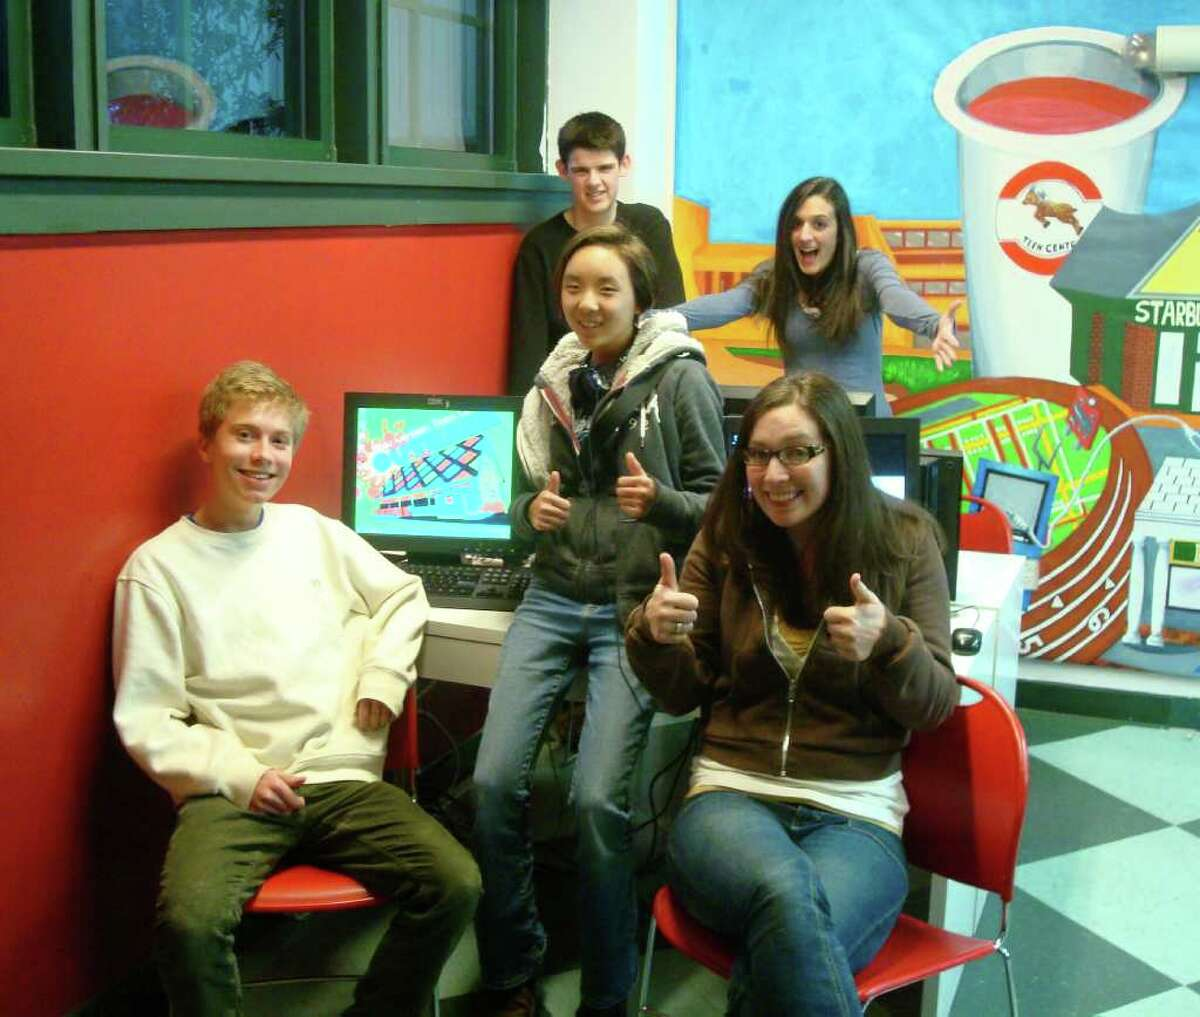 Outback Student Governing Board members pose by new computers donated by the Board of Education, from front left, Tim Casavant, Emily Serven, Outback Program Director Erin McDermott; back, James Shea and Outback Teen Coordinator Katelyn Sci.